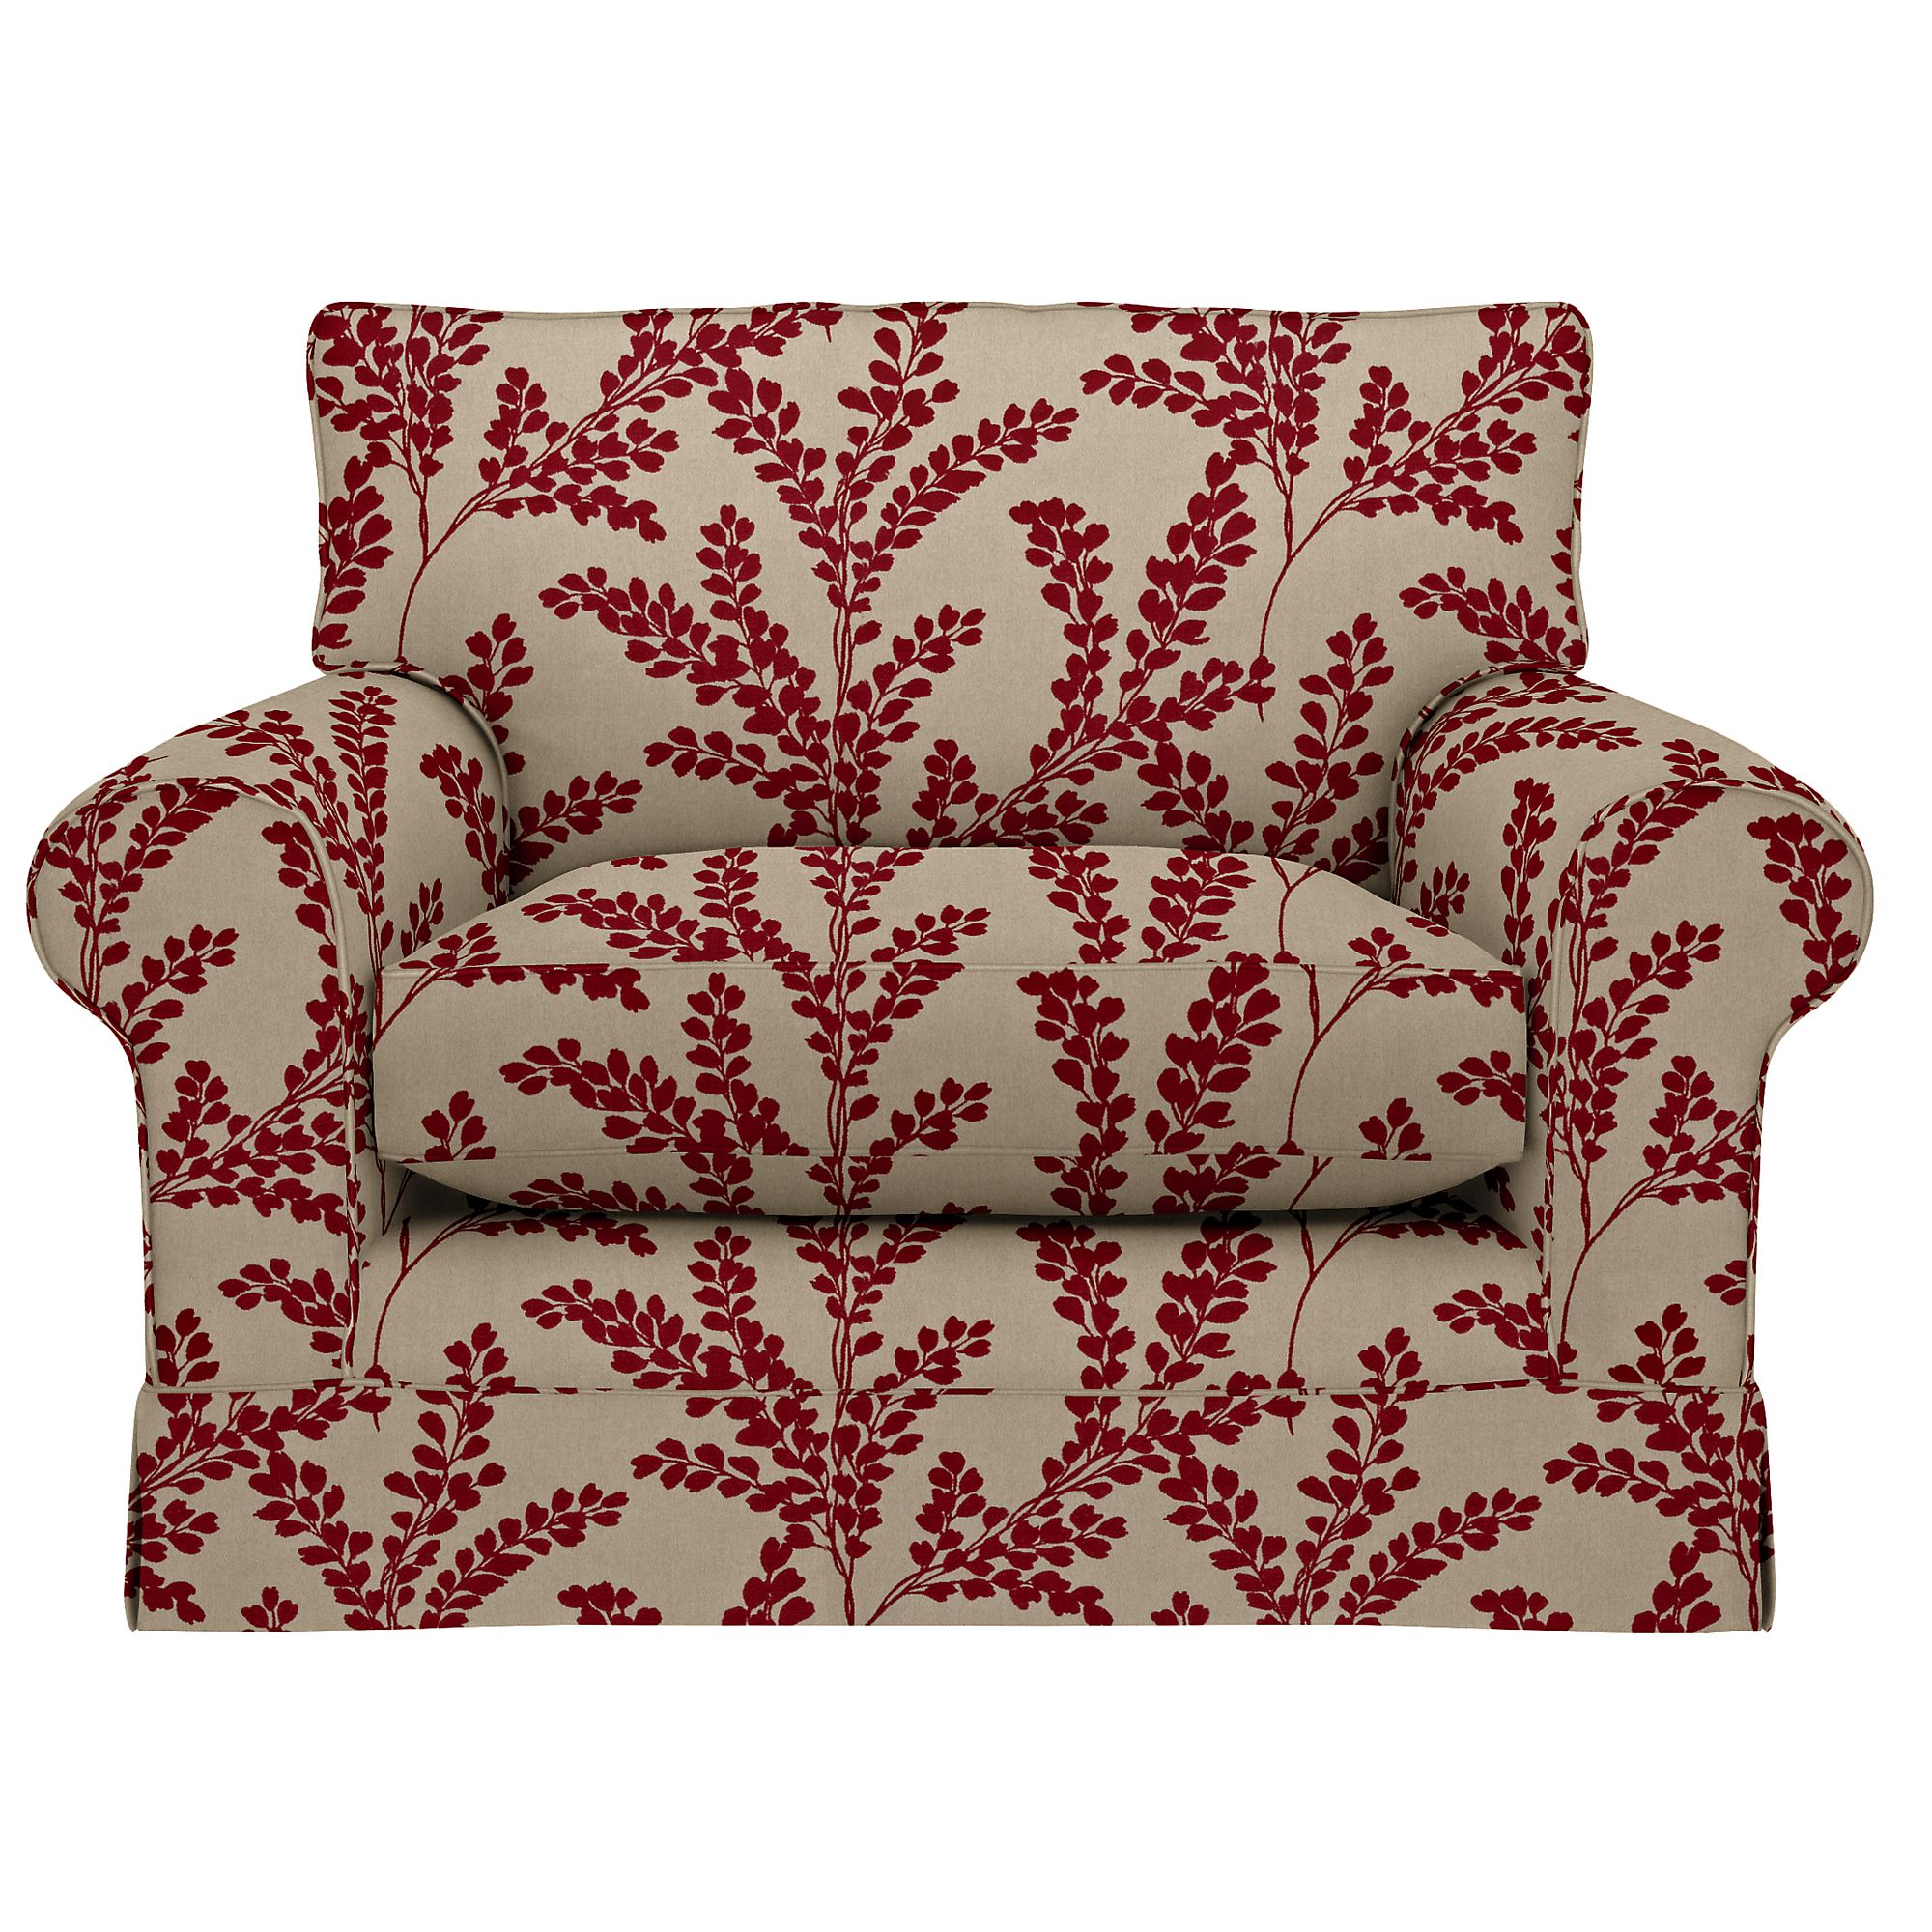 John Lewis Padstow Snuggler, Price Band F, Sanderson Clovelly Claret